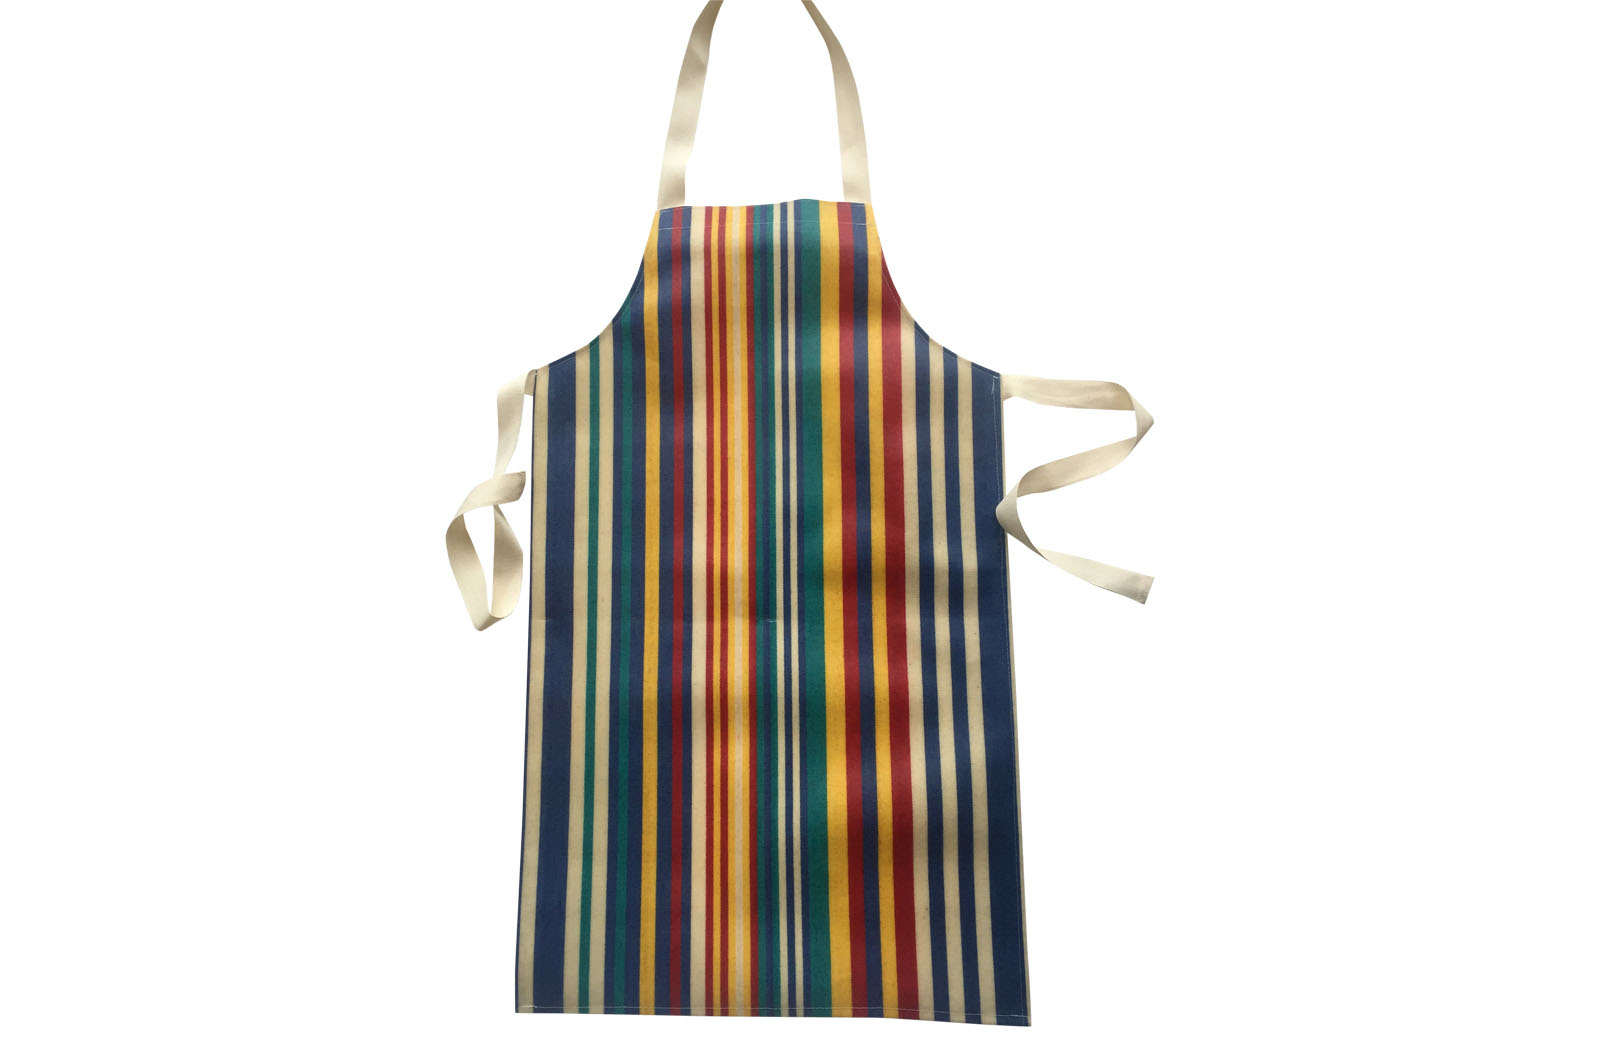 Striped Childs PVC Apron stripes of denim blue, turquoise, red and yellow